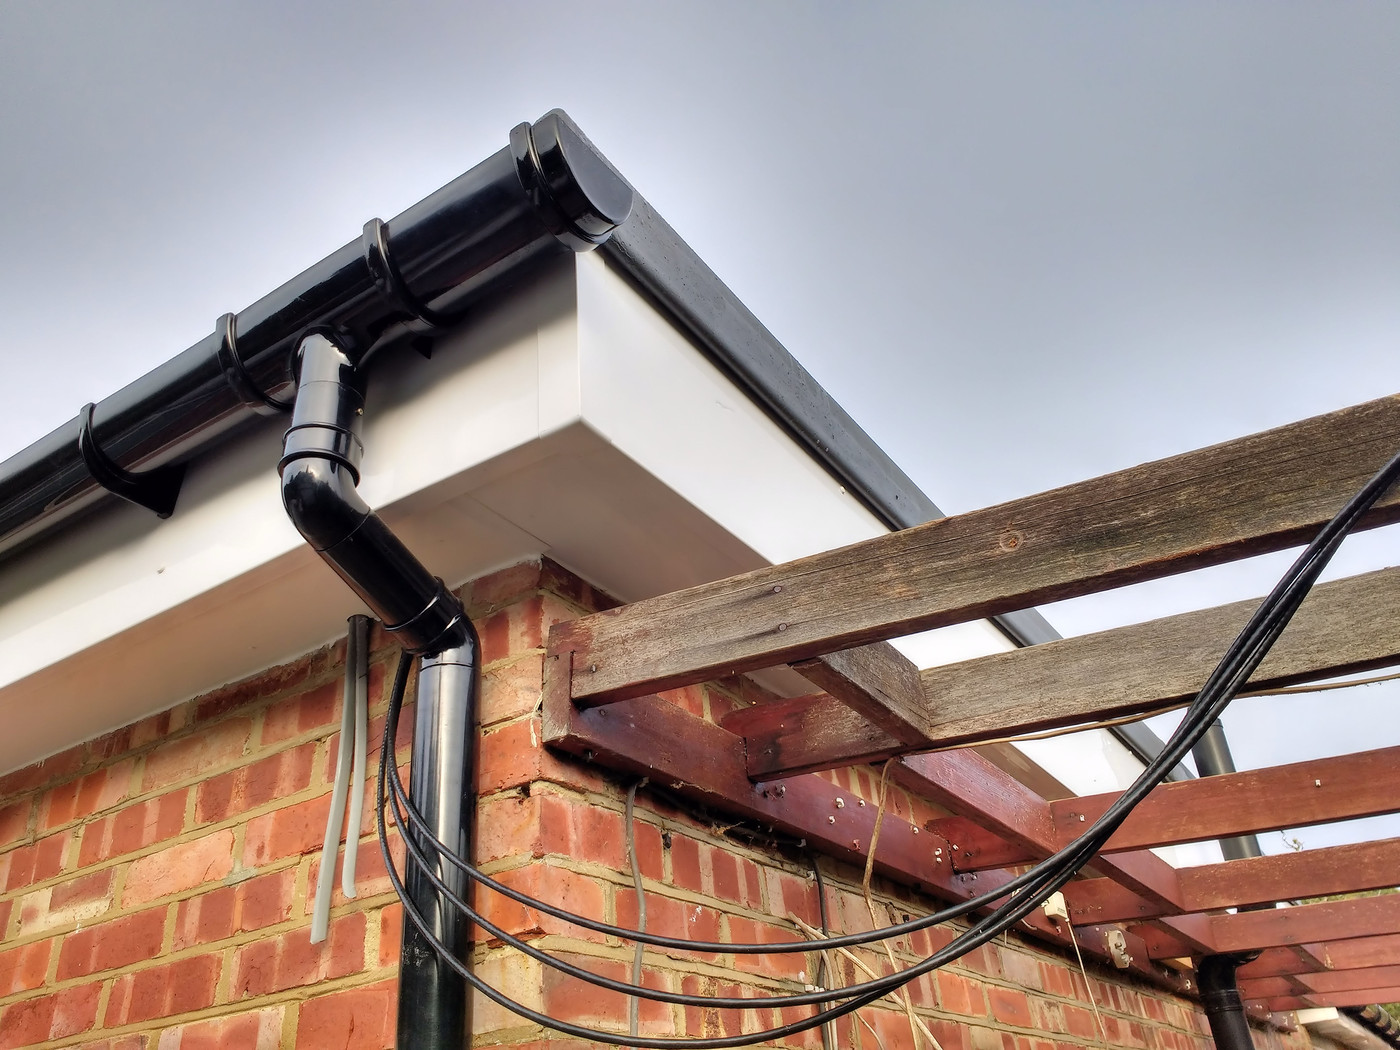 Warm Flat Roof Connected To Cold Pitched Roof Confused Page 3